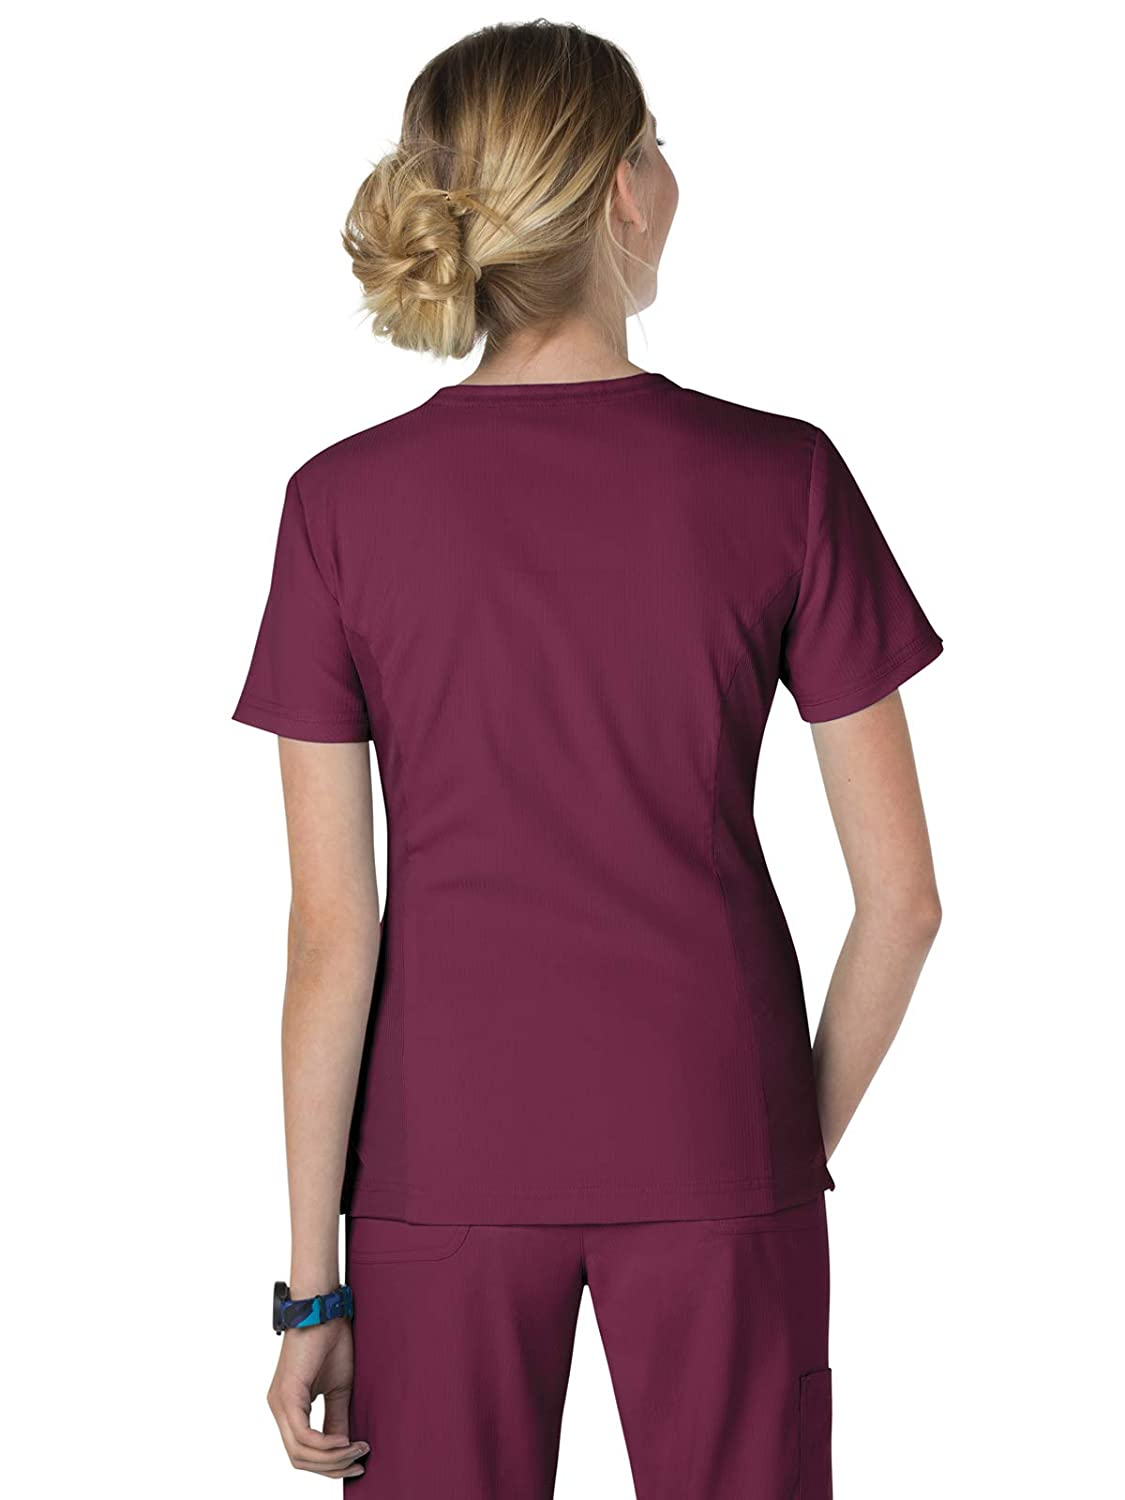 0531101deb Amazon.com: KOI lite 316 Women's Philosophy Scrub Top: Clothing